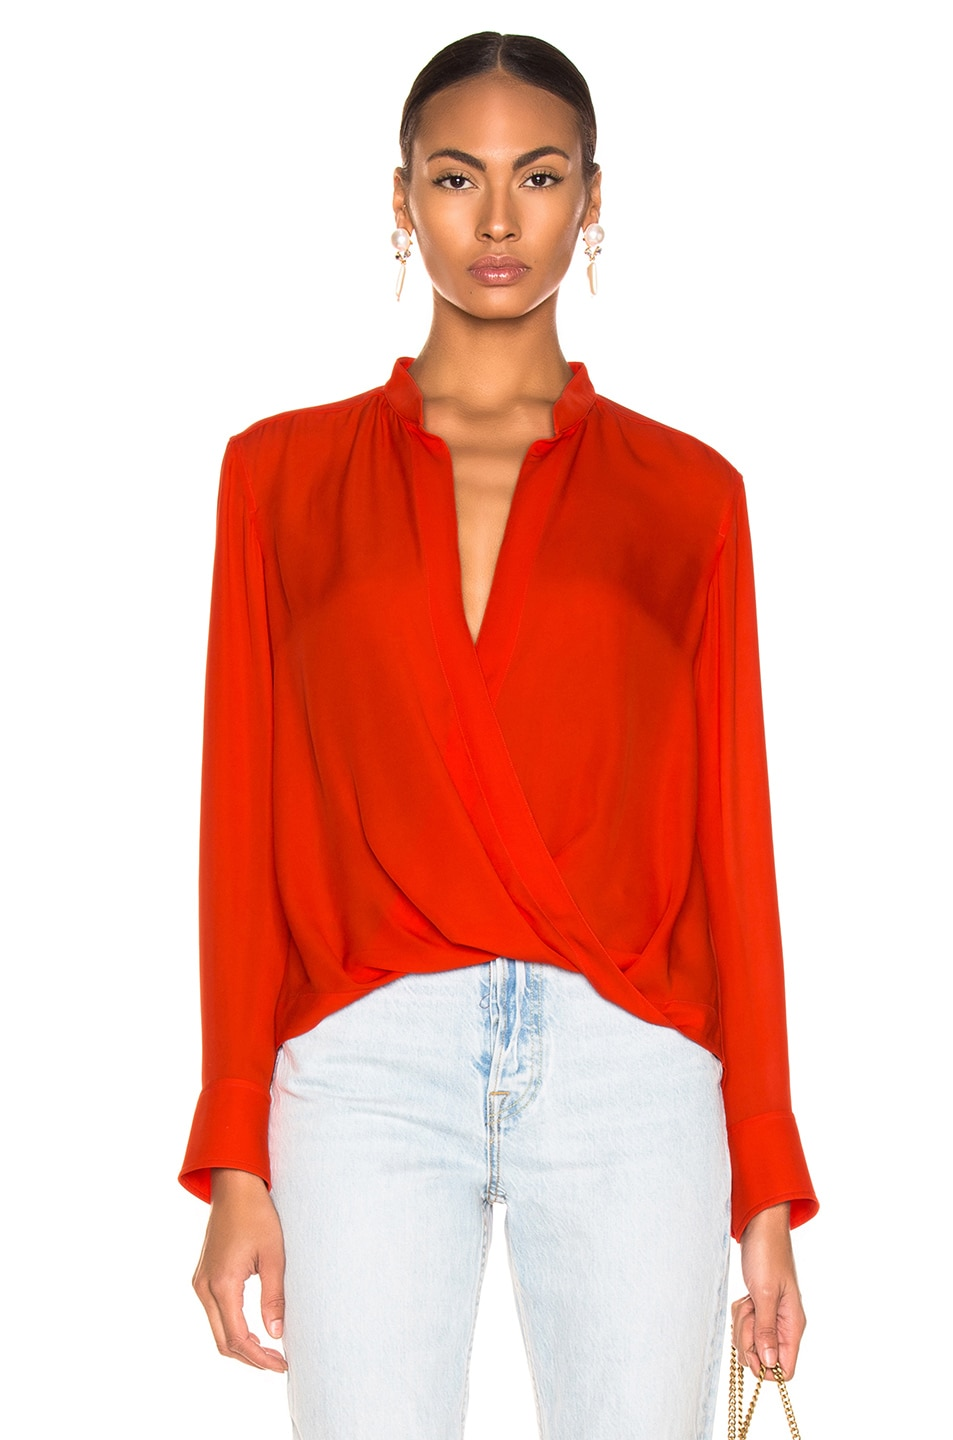 A.l.c Tops A.L.C. LUCA TOP IN ORANGE.